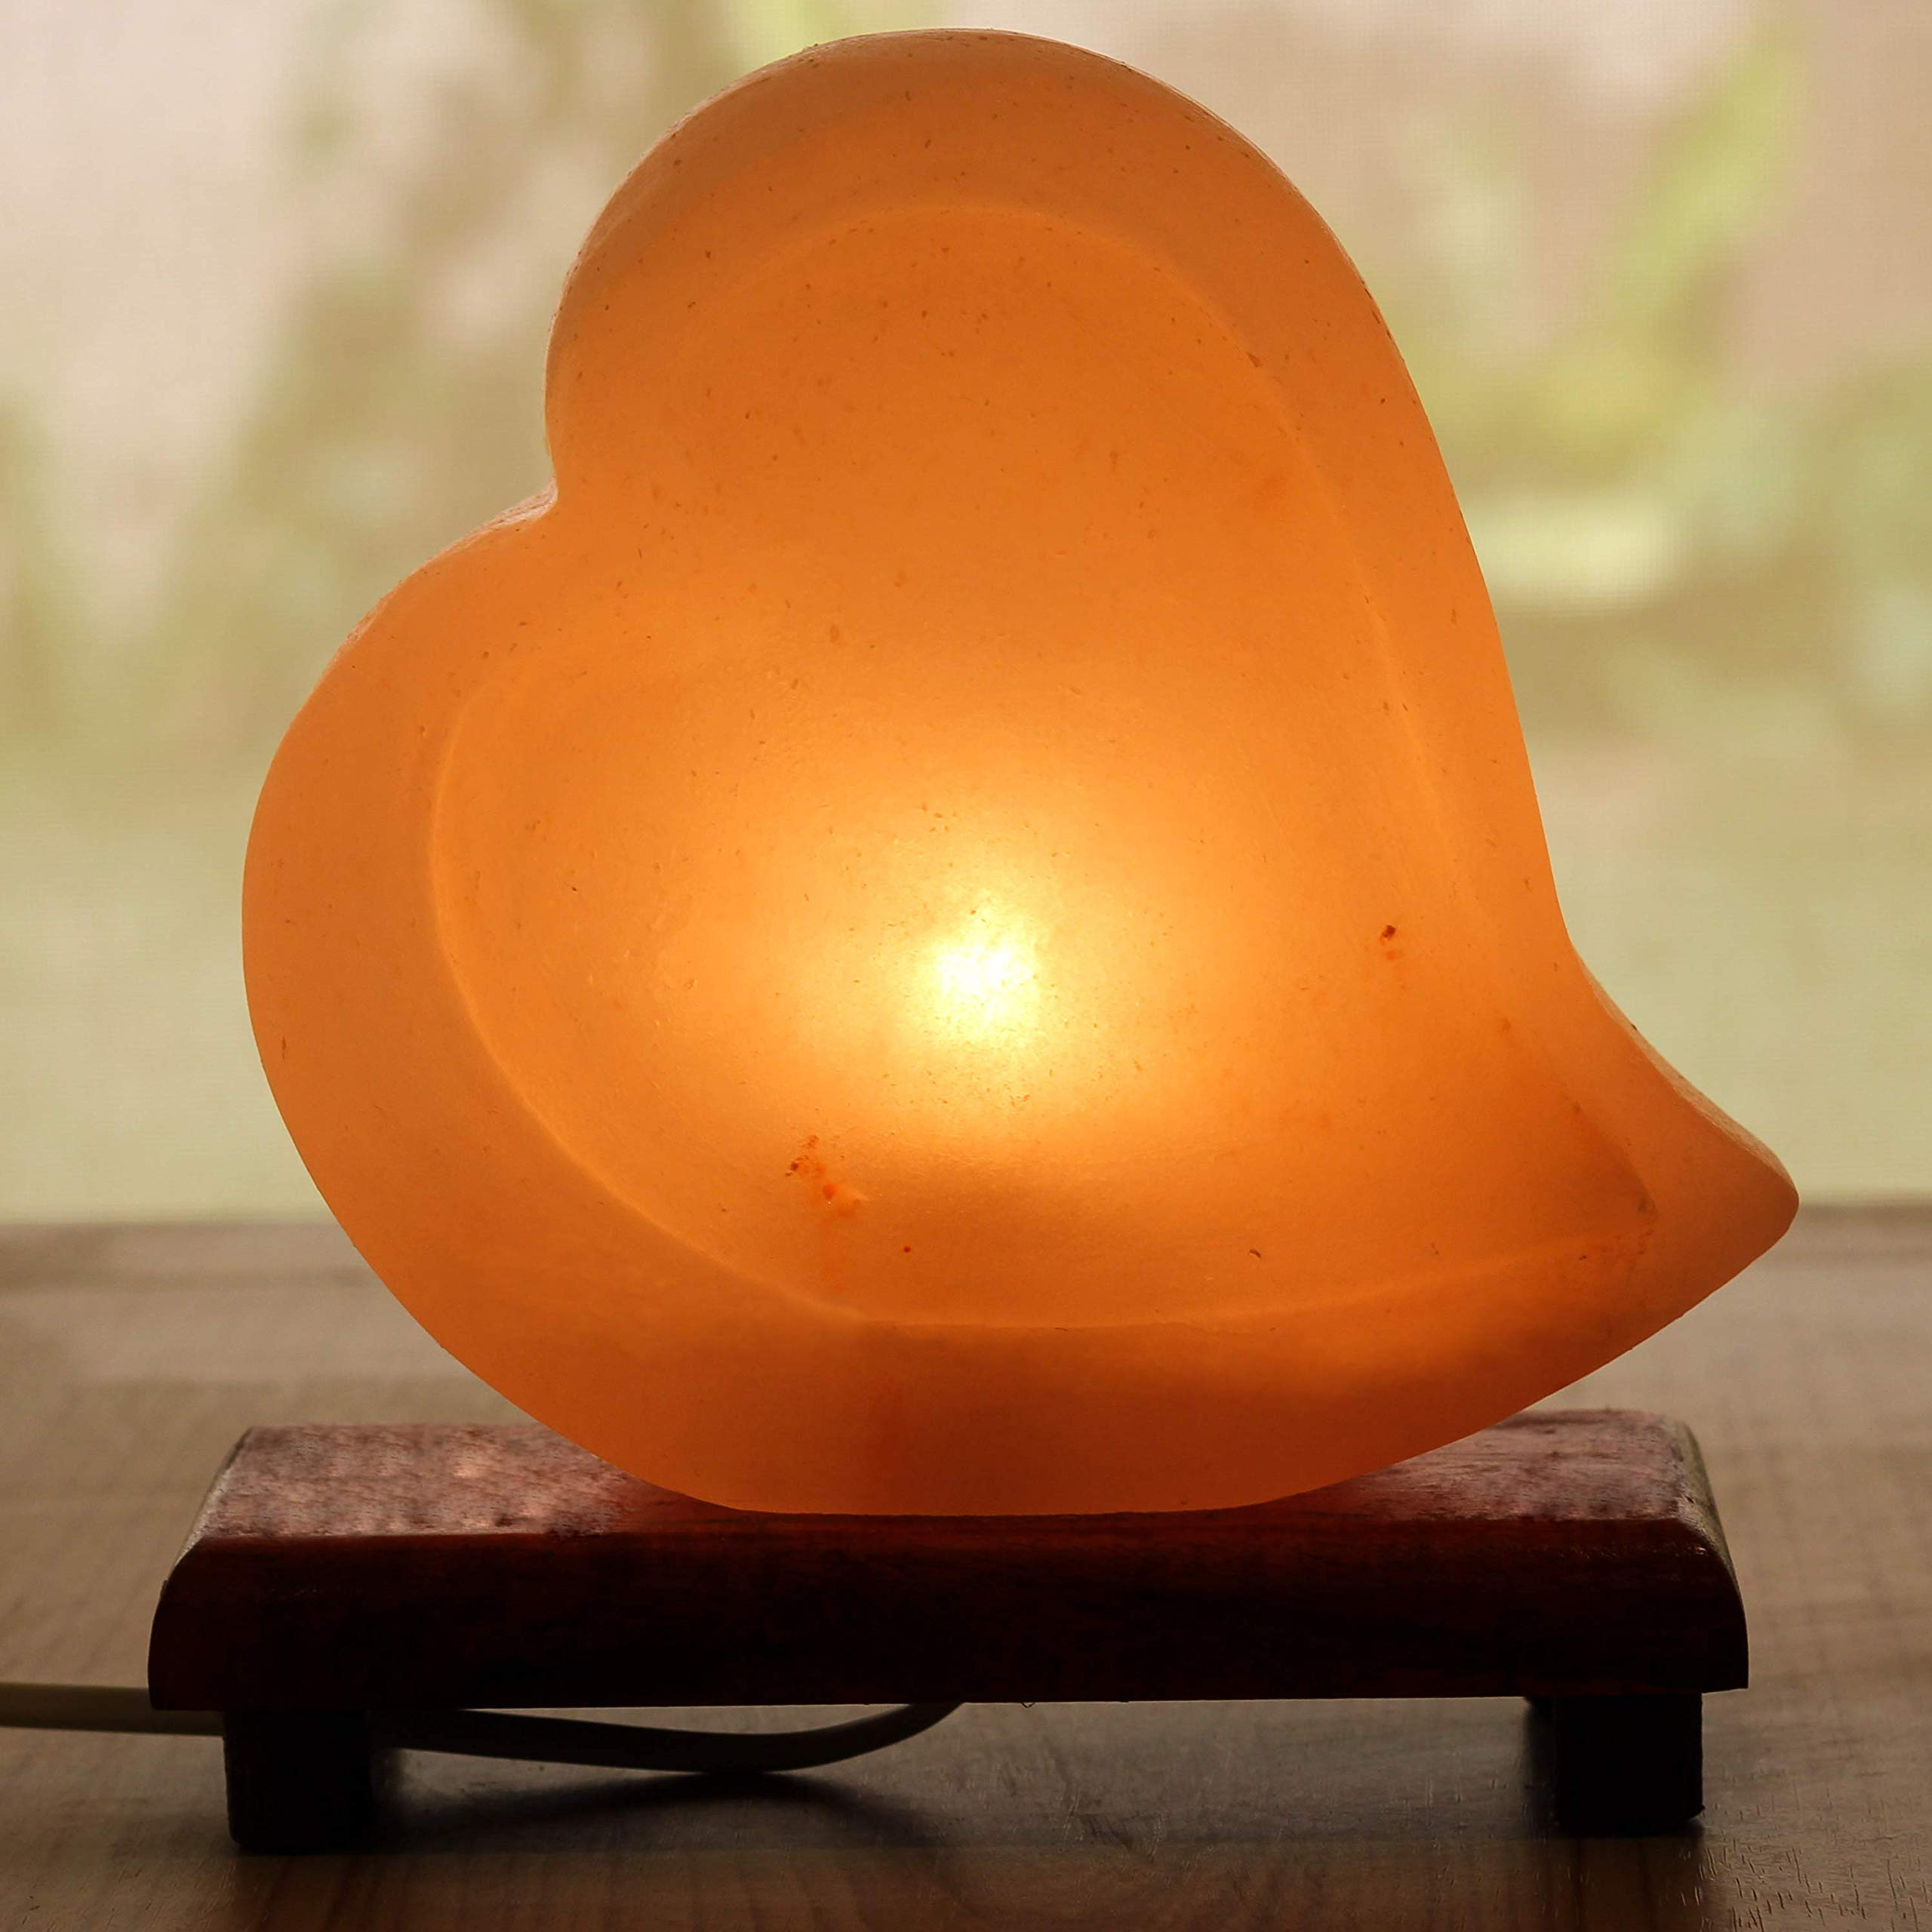 Mockins Natural Himalayan Salt Double Heart Shaped Lamp The Salt Lamp is Hand Carved with a Wooden Base and Dimmer - Best Mother's Day Gift … … … … … by Mockins (Image #2)